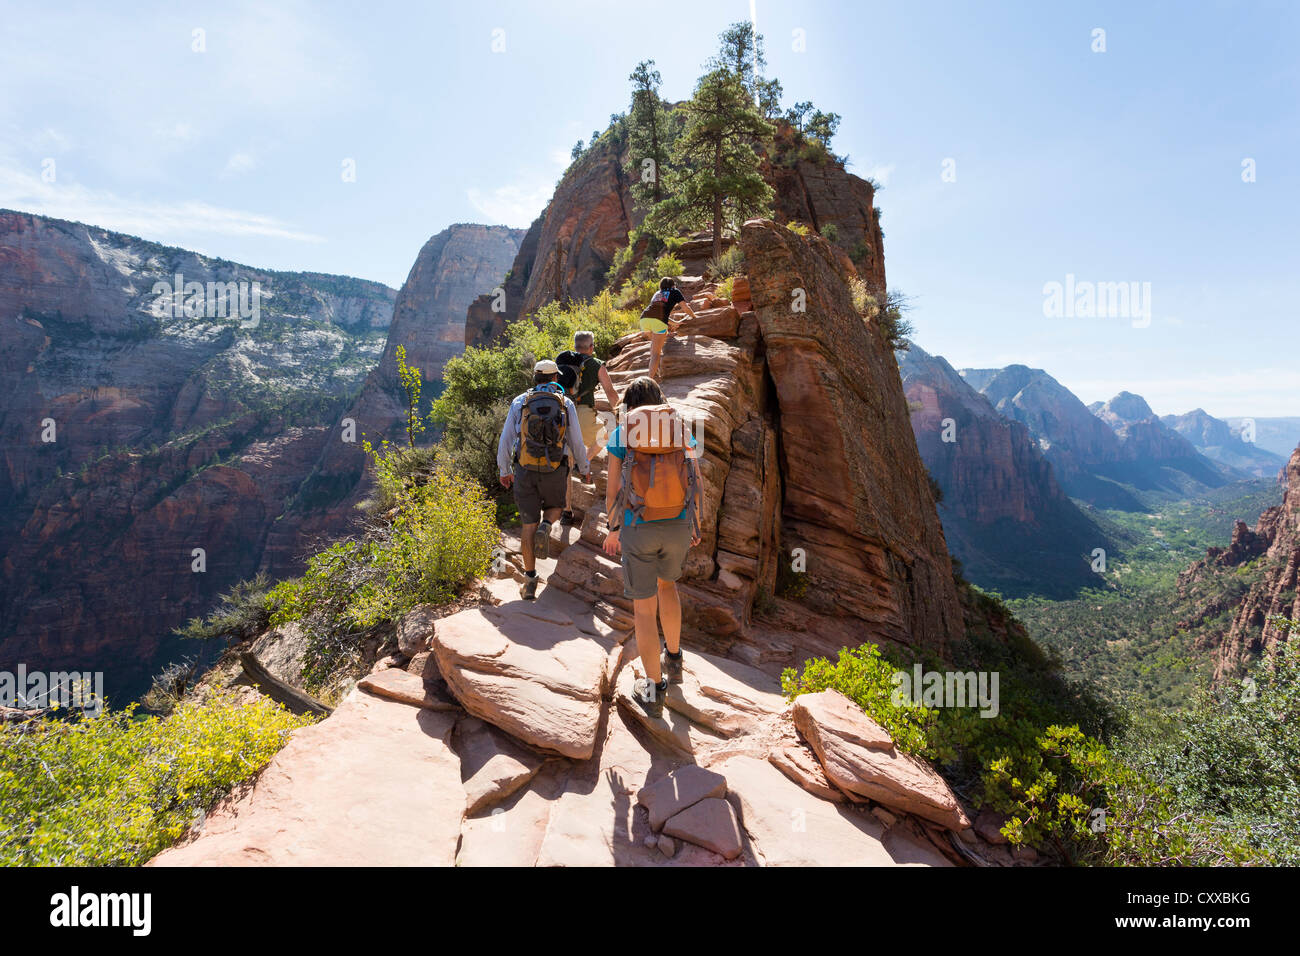 People hiking a strenuous Angel's Landing trail at Zion National Park - beautiful scenic views - Stock Image